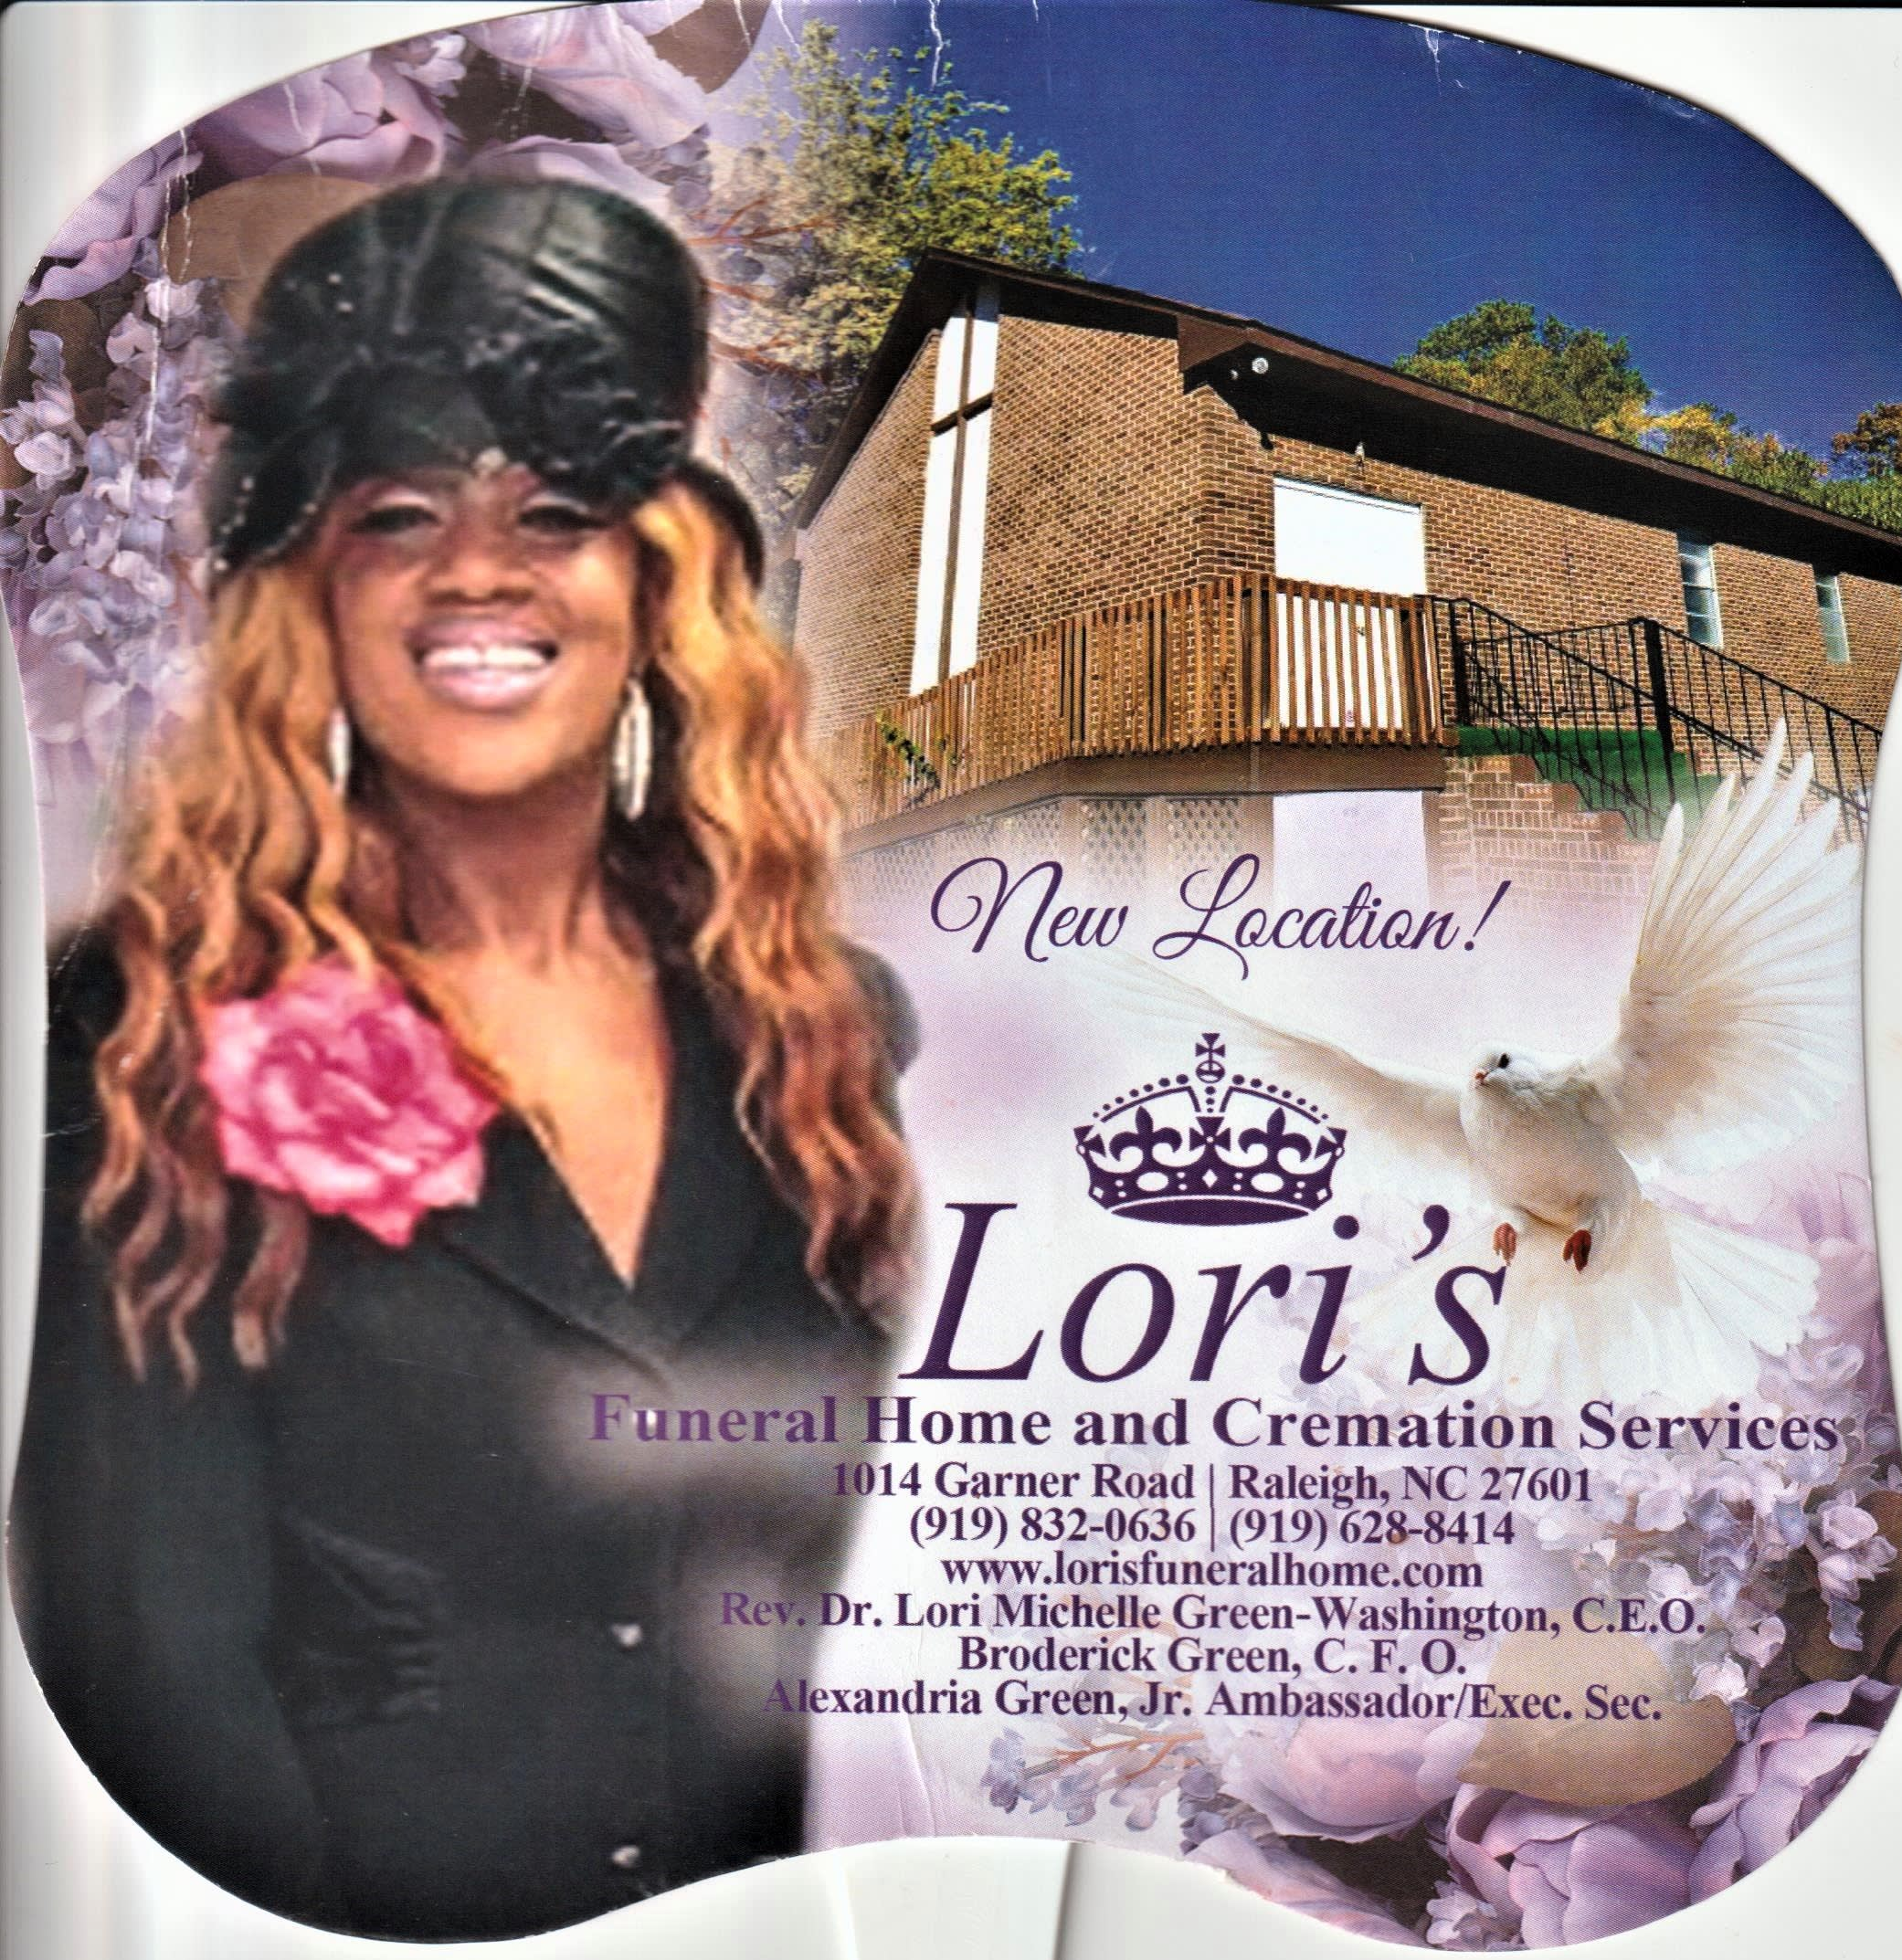 Lori's Funeral Home and Cremation Services - Raleigh, NC